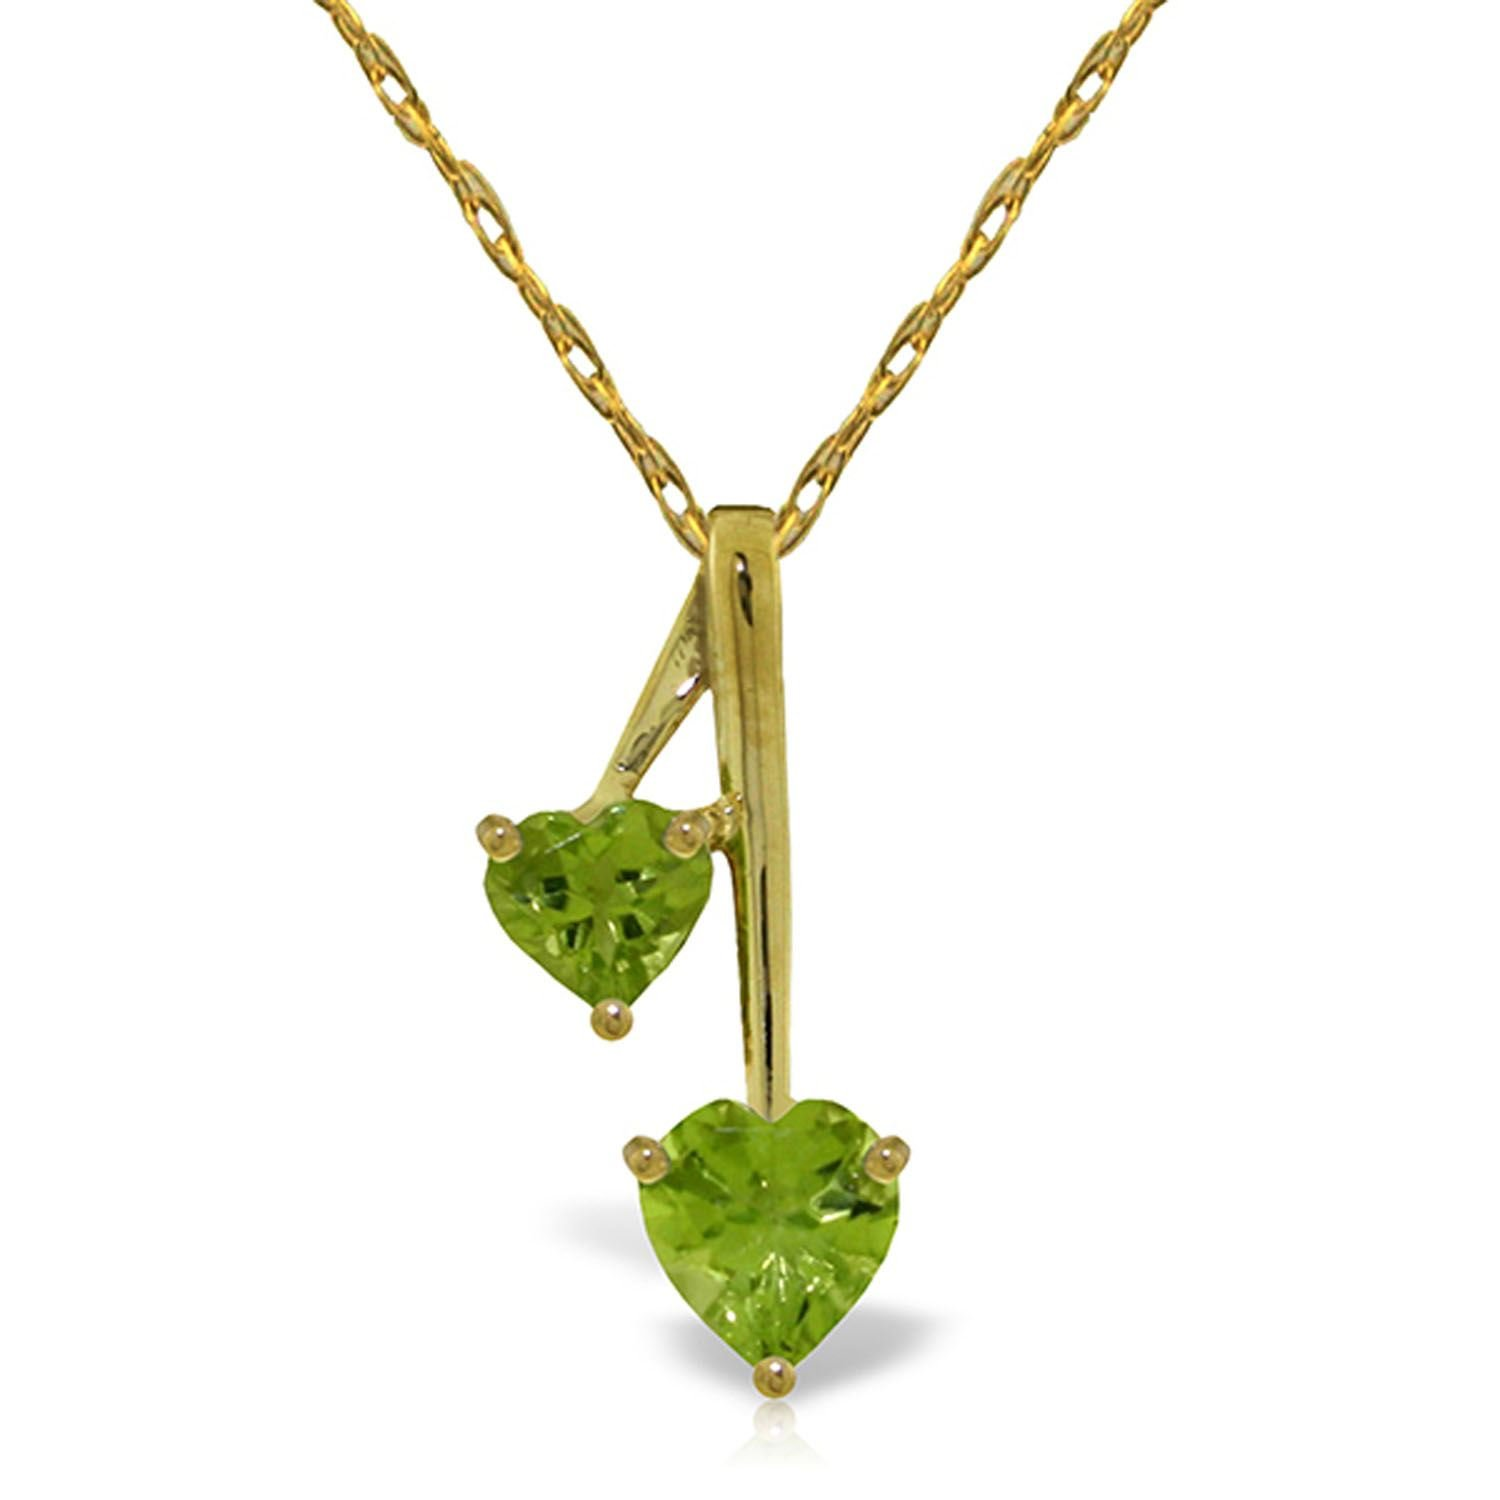 ALARRI 1.4 Carat 14K Solid Gold Hearts Necklace Natural Peridot with 24 Inch Chain Length